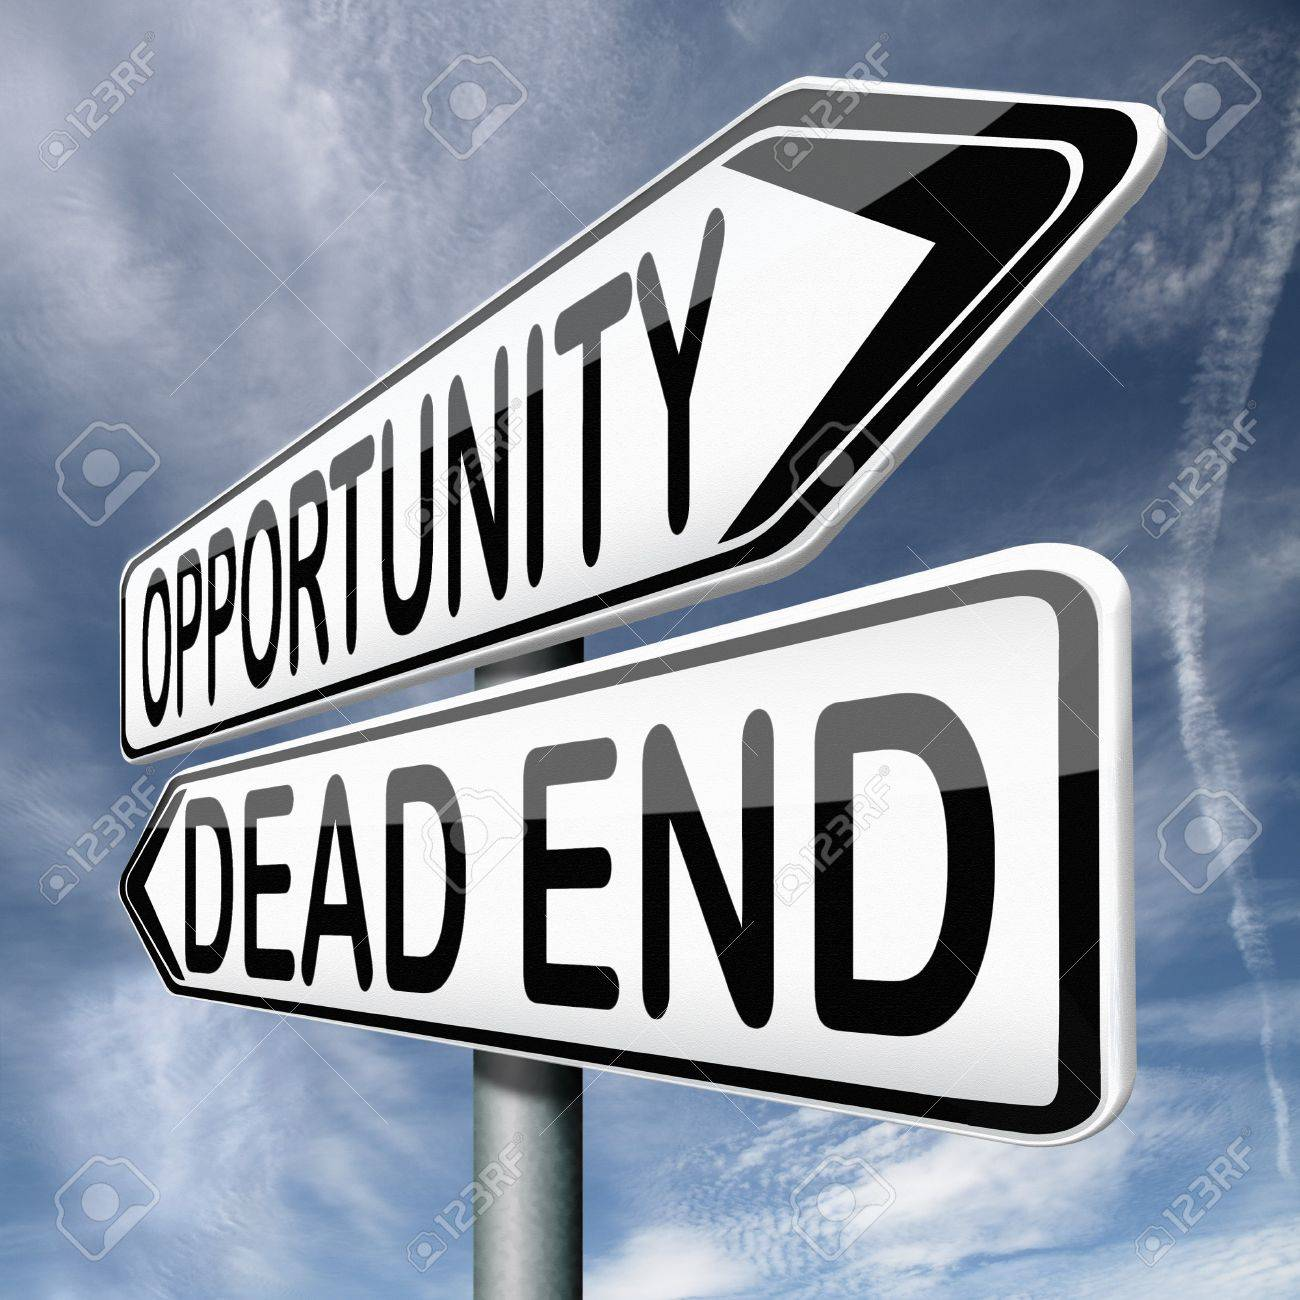 opportunity or dead end street a better choice for business way stock photo opportunity or dead end street a better choice for business way or road towards success